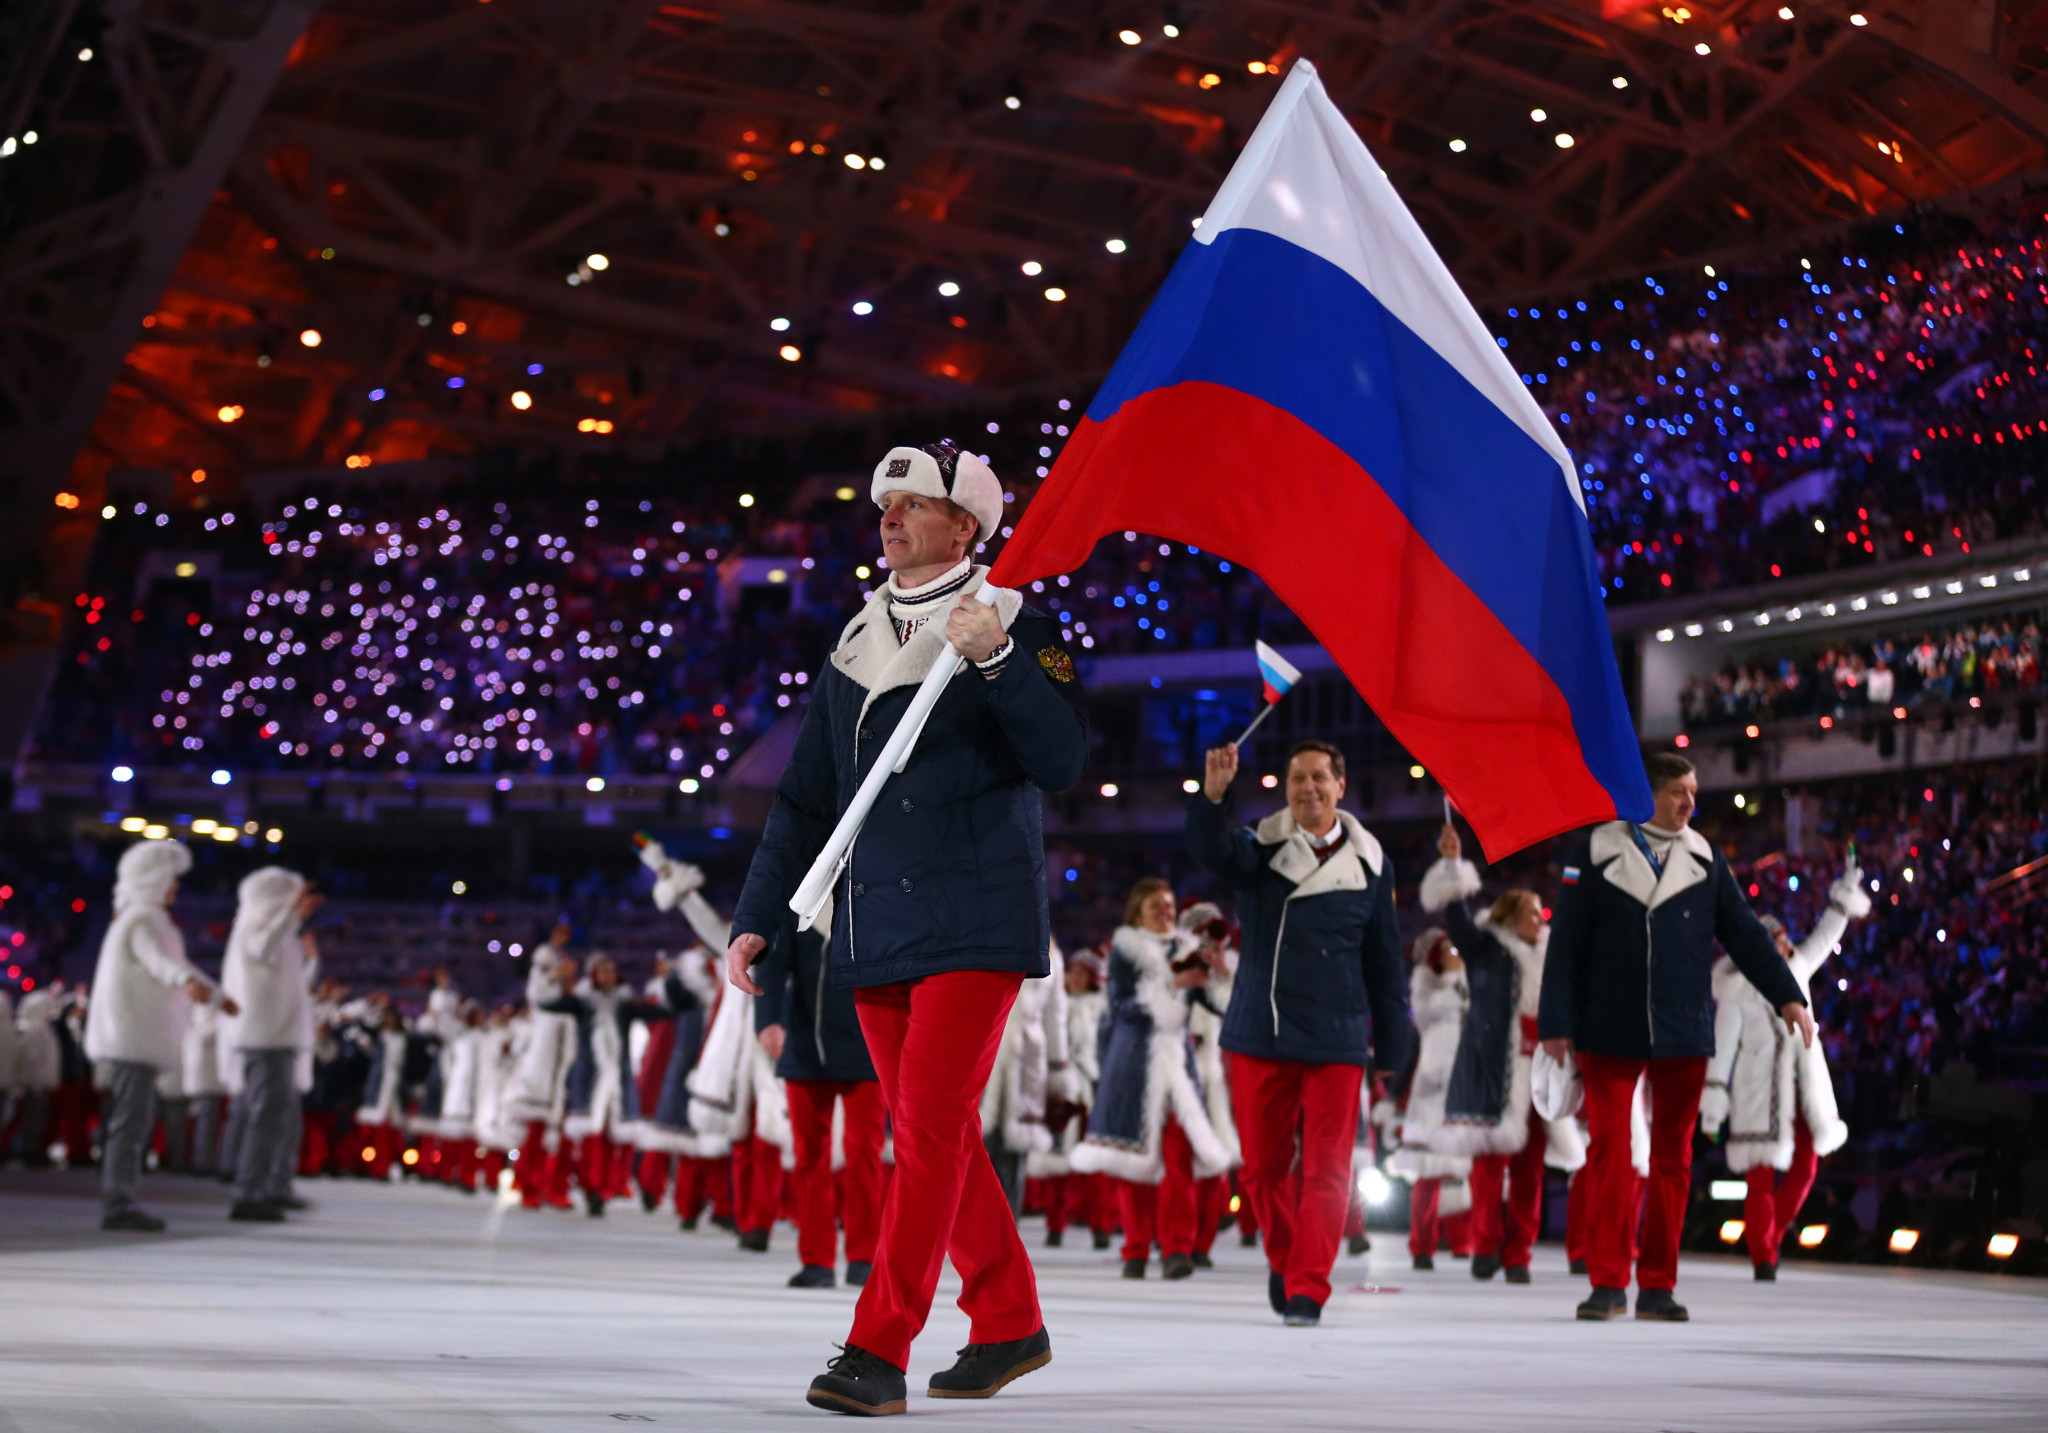 A verdict is still expected against Russian athletes, including double Olympic gold medallist Alexander Zubkov, who carried his country's flag at the Opening Ceremony of Sochi 2014 ©Getty Images